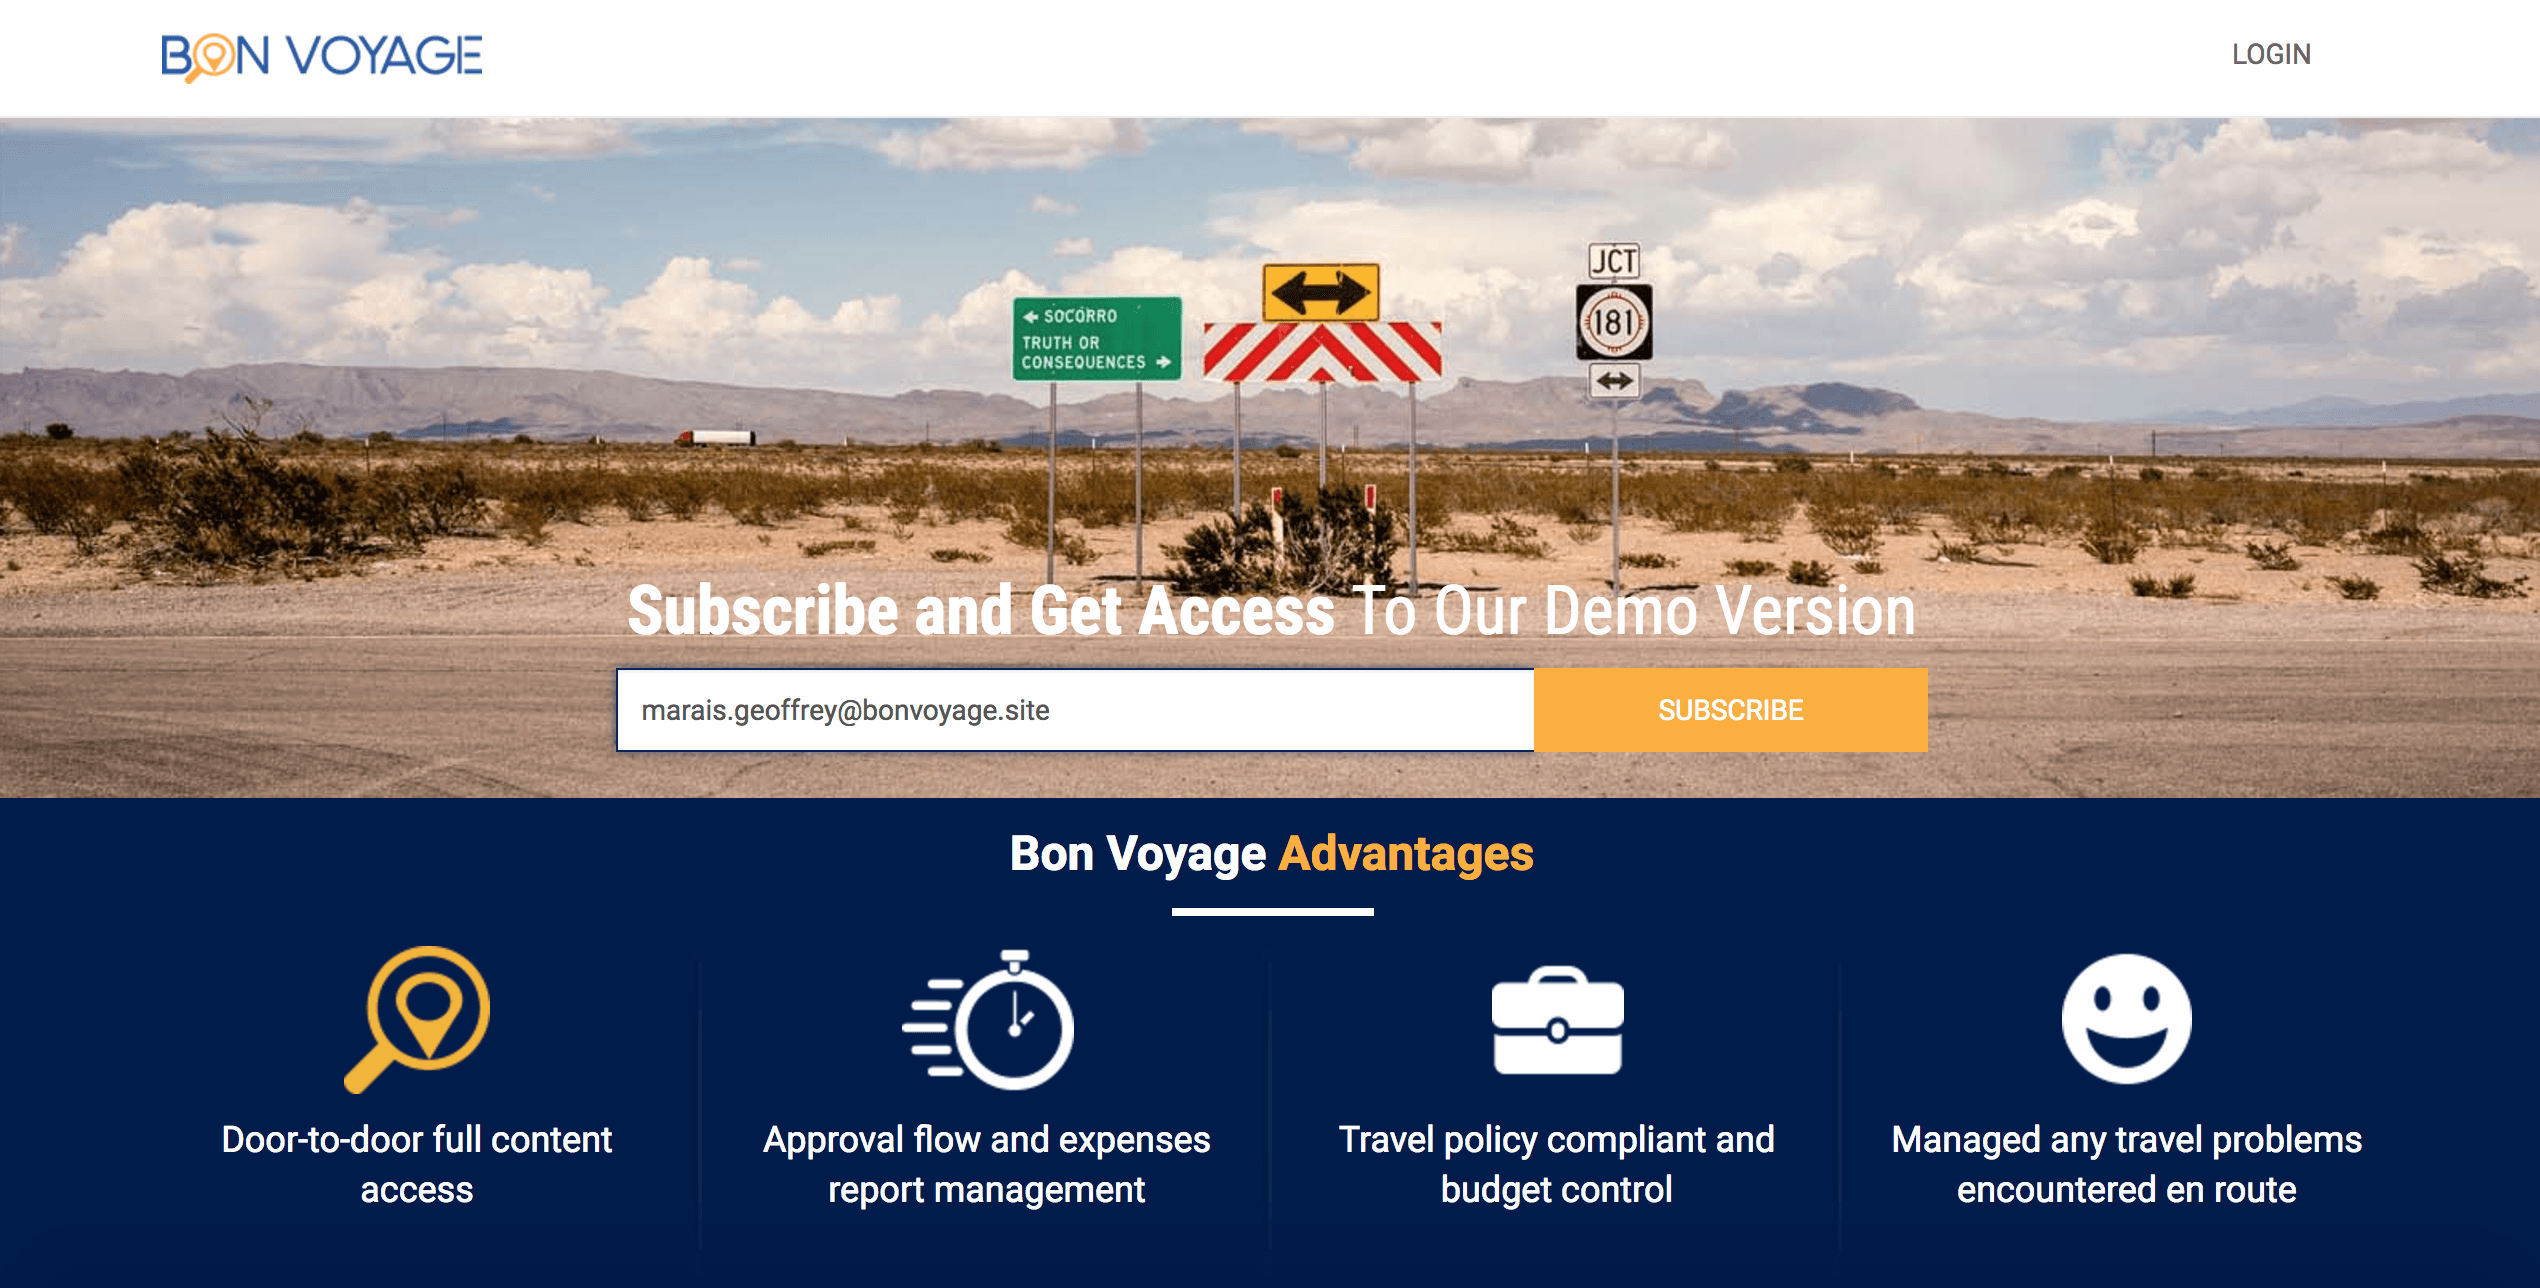 BonVoyage.SITE: An End-to-End Travel App